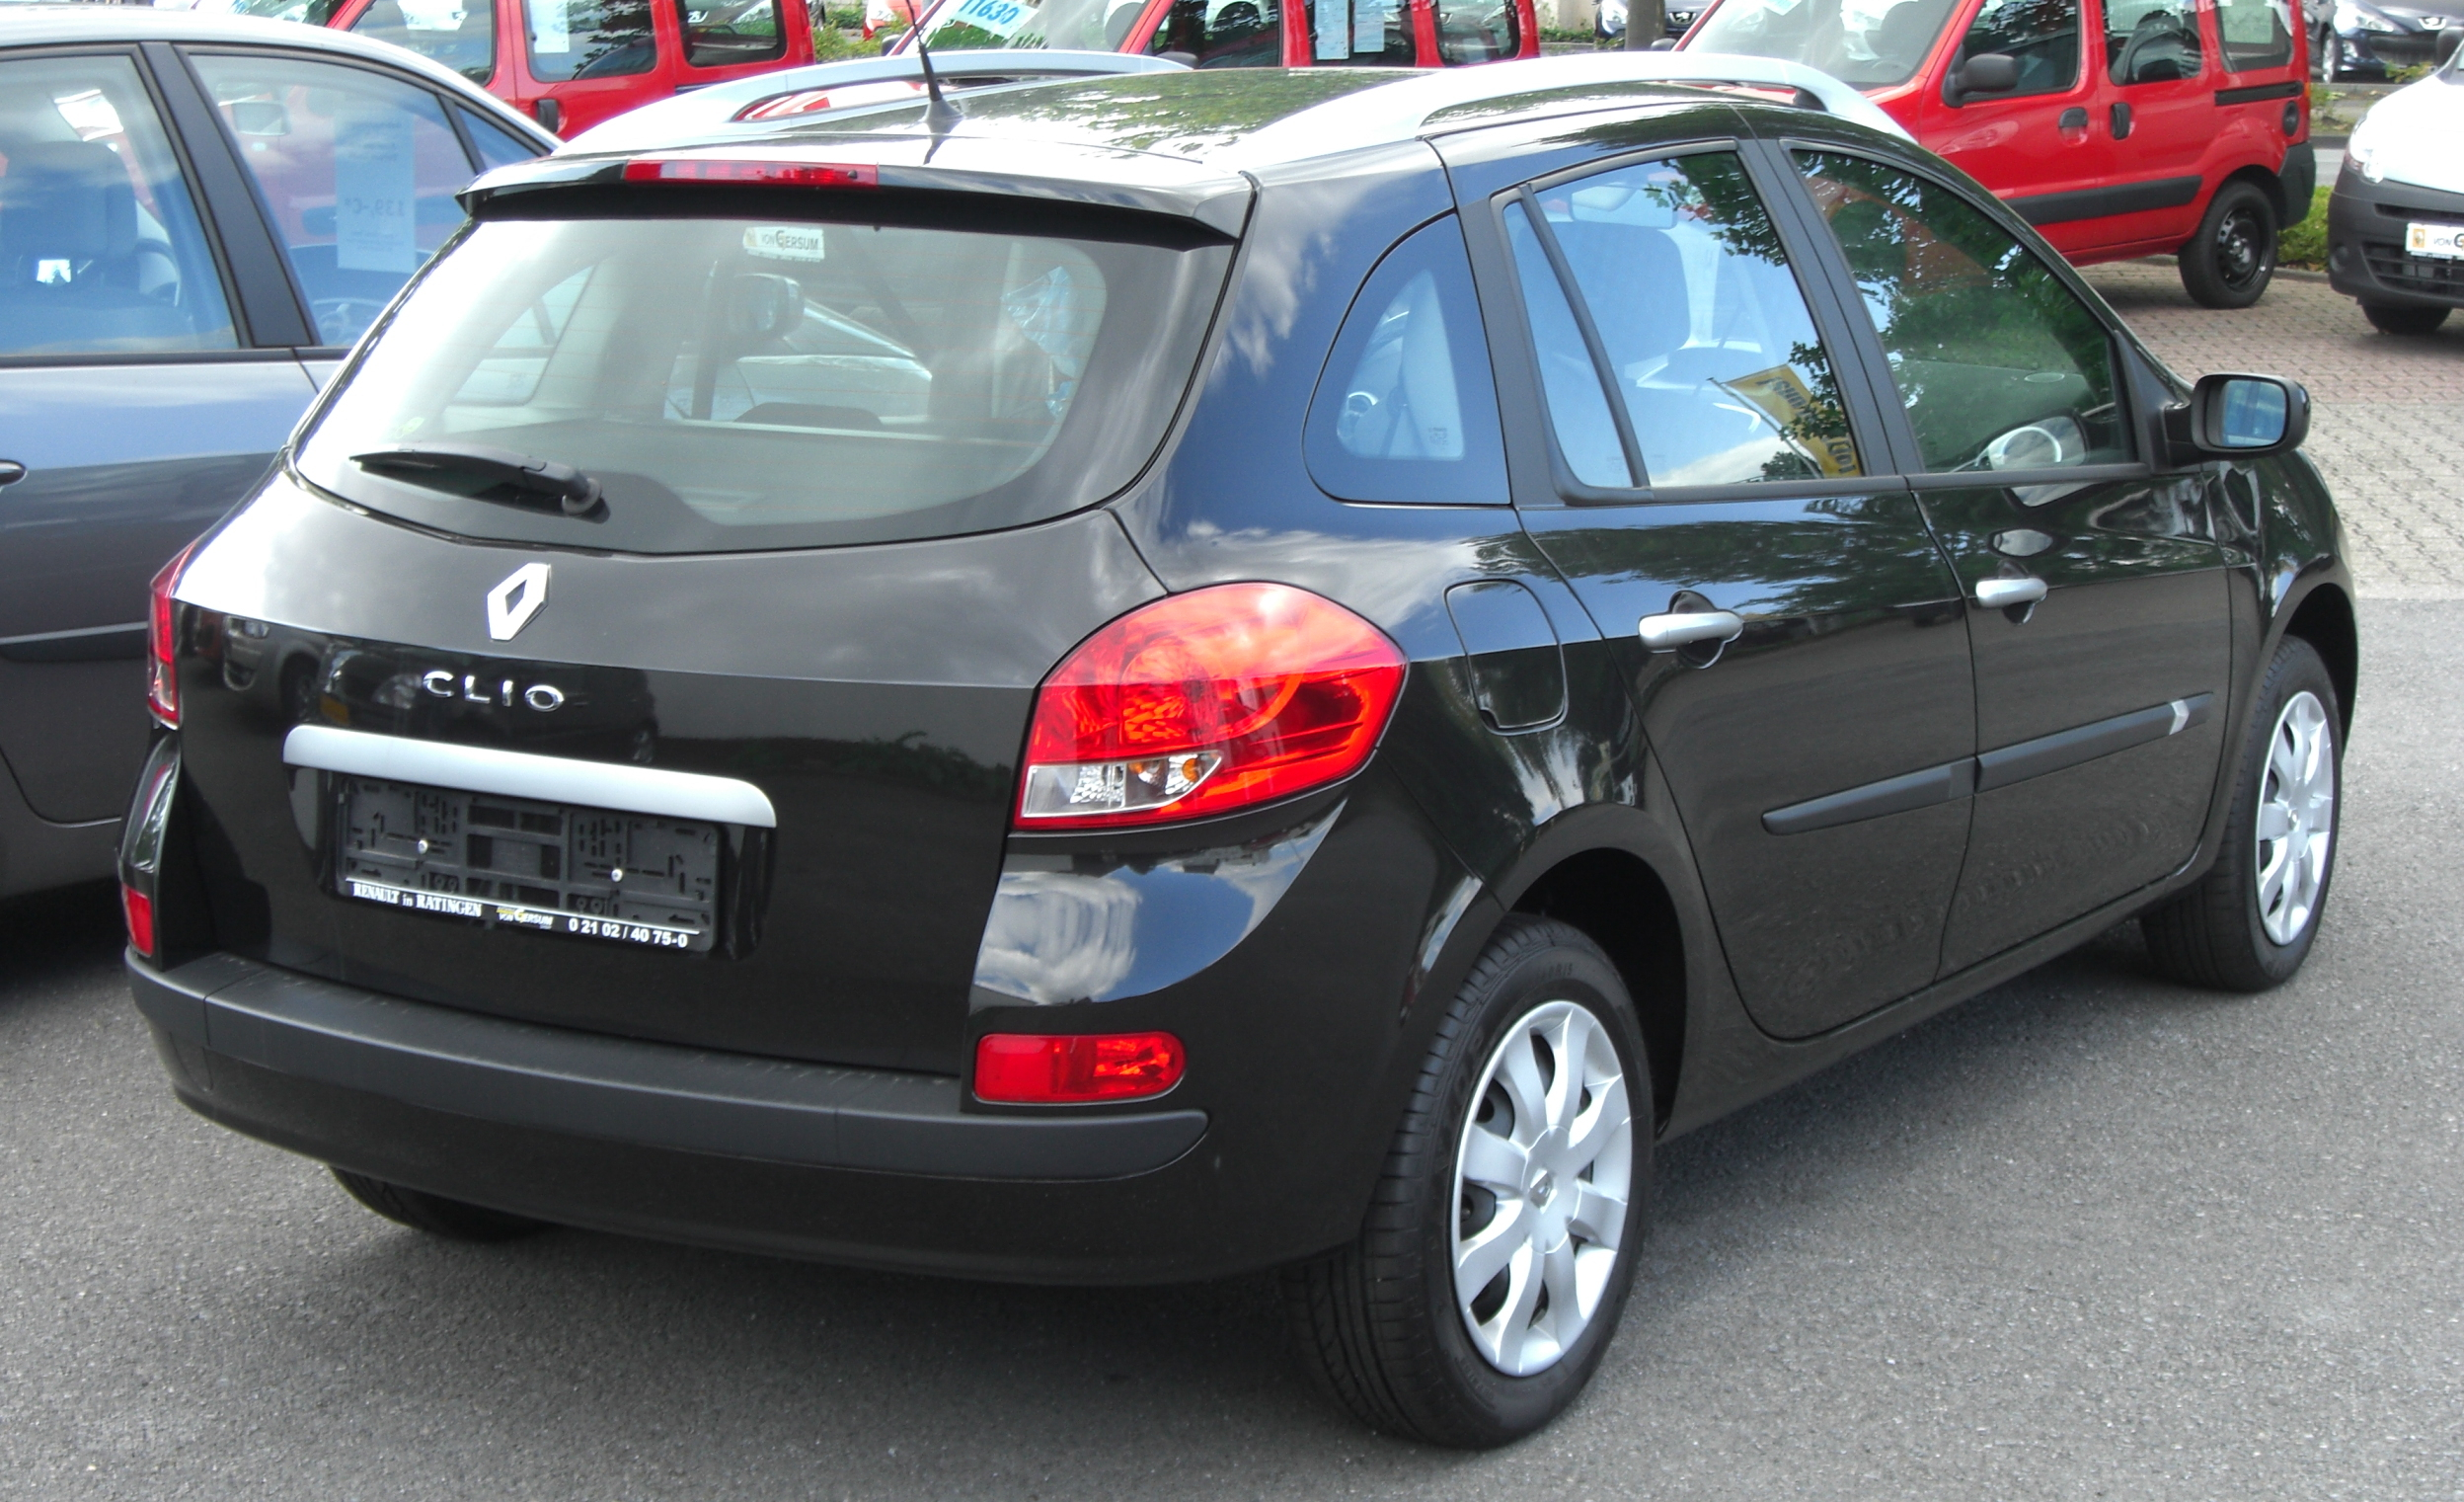 2008 renault clio iii pictures information and specs auto. Black Bedroom Furniture Sets. Home Design Ideas